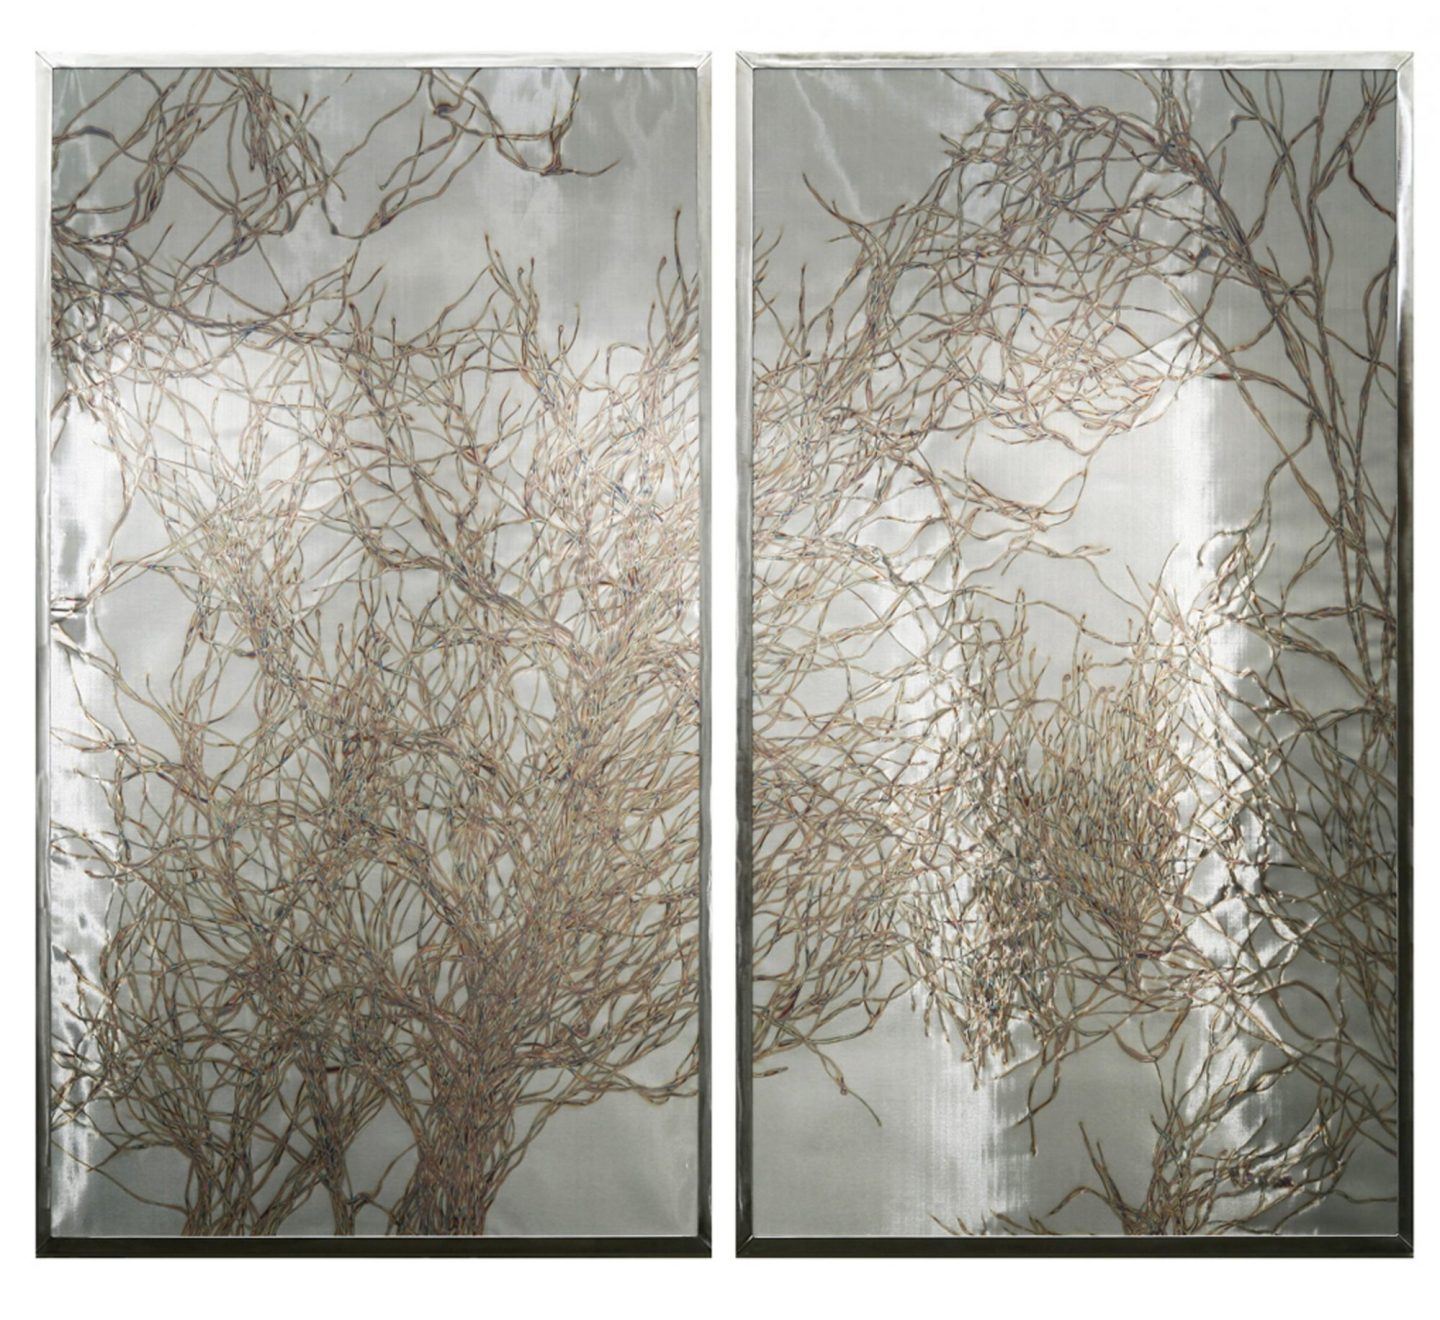 Wonne Moonlight (Diptych)